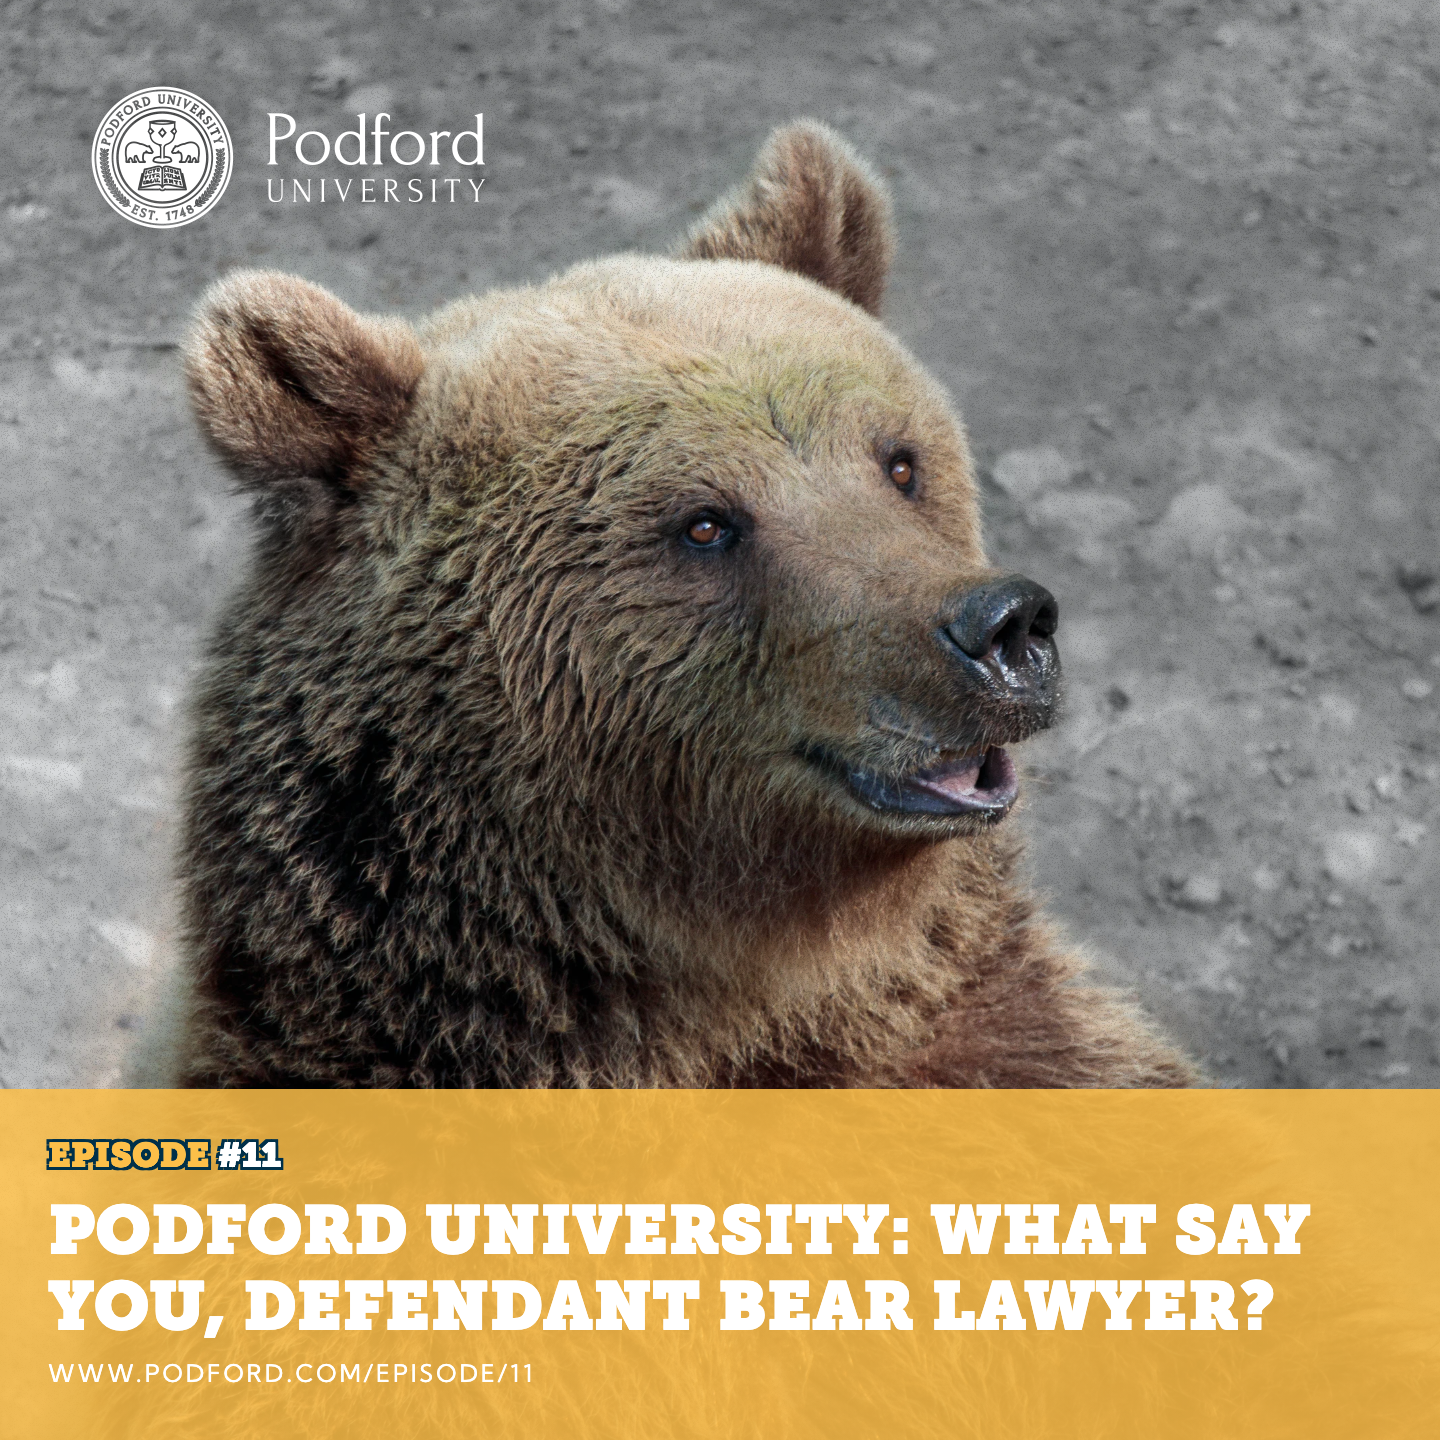 Podford University: What Say You, Defendant Bear Lawyer?